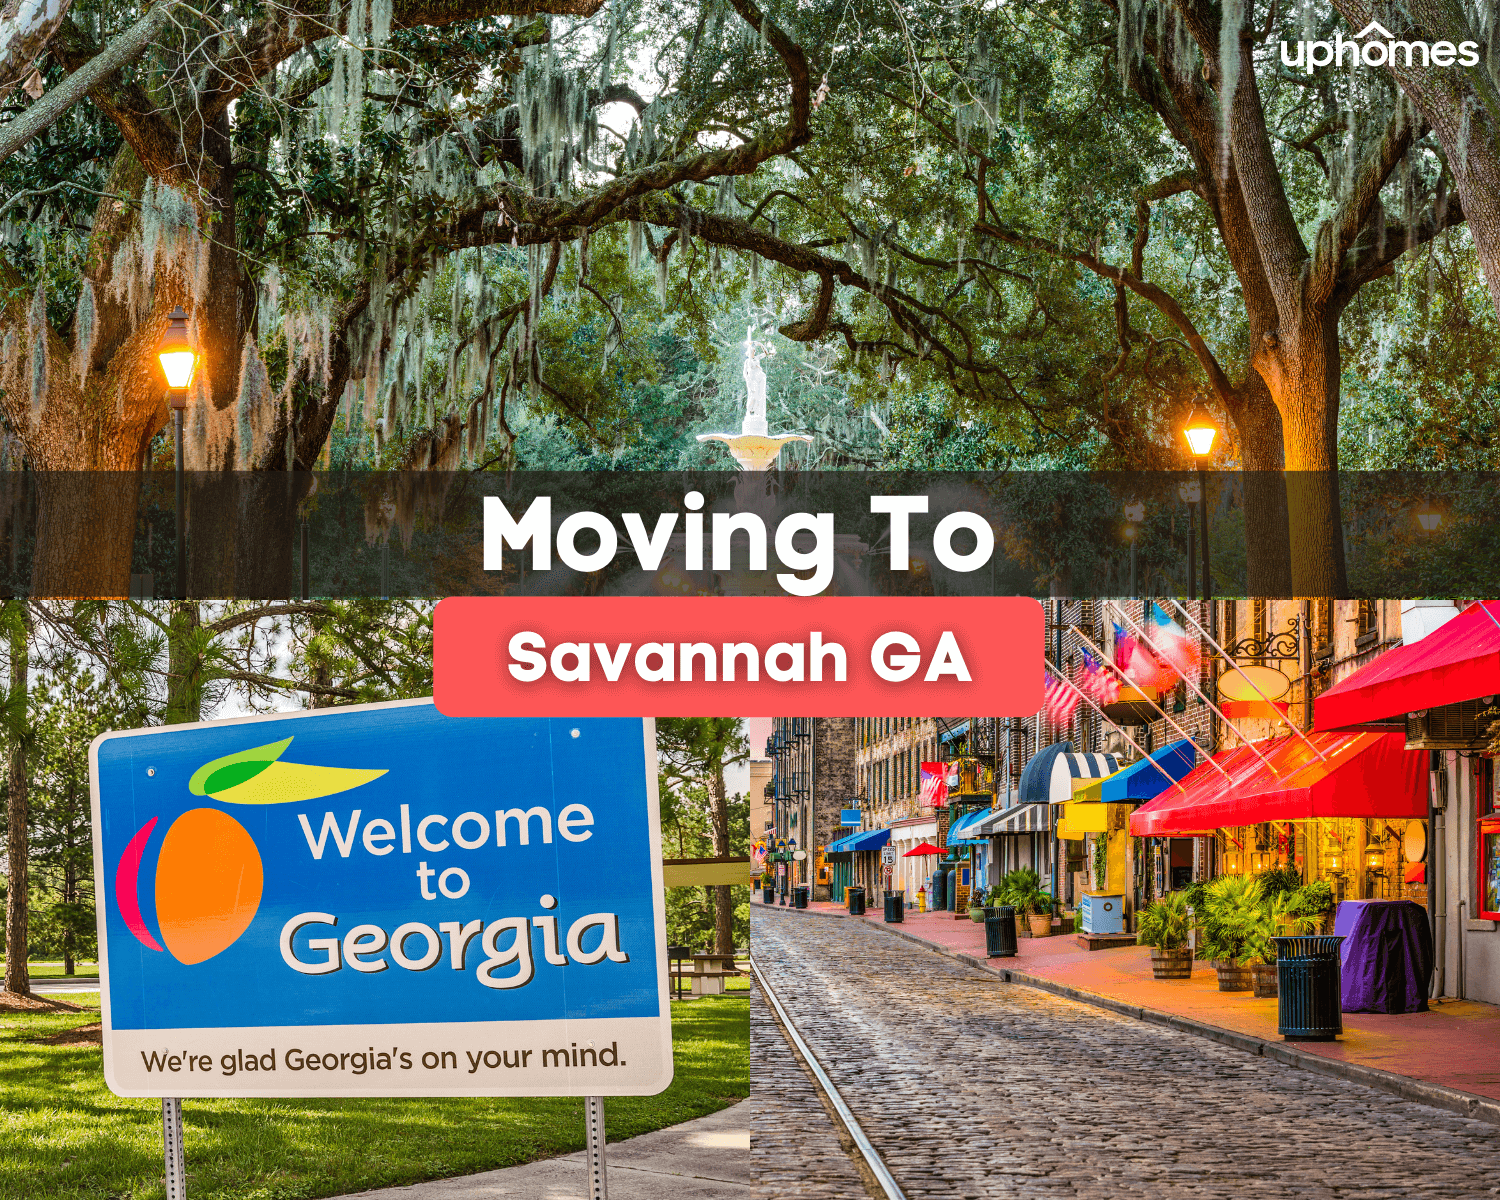 Moving to Savannah - What is it like Living in Savannah GA?